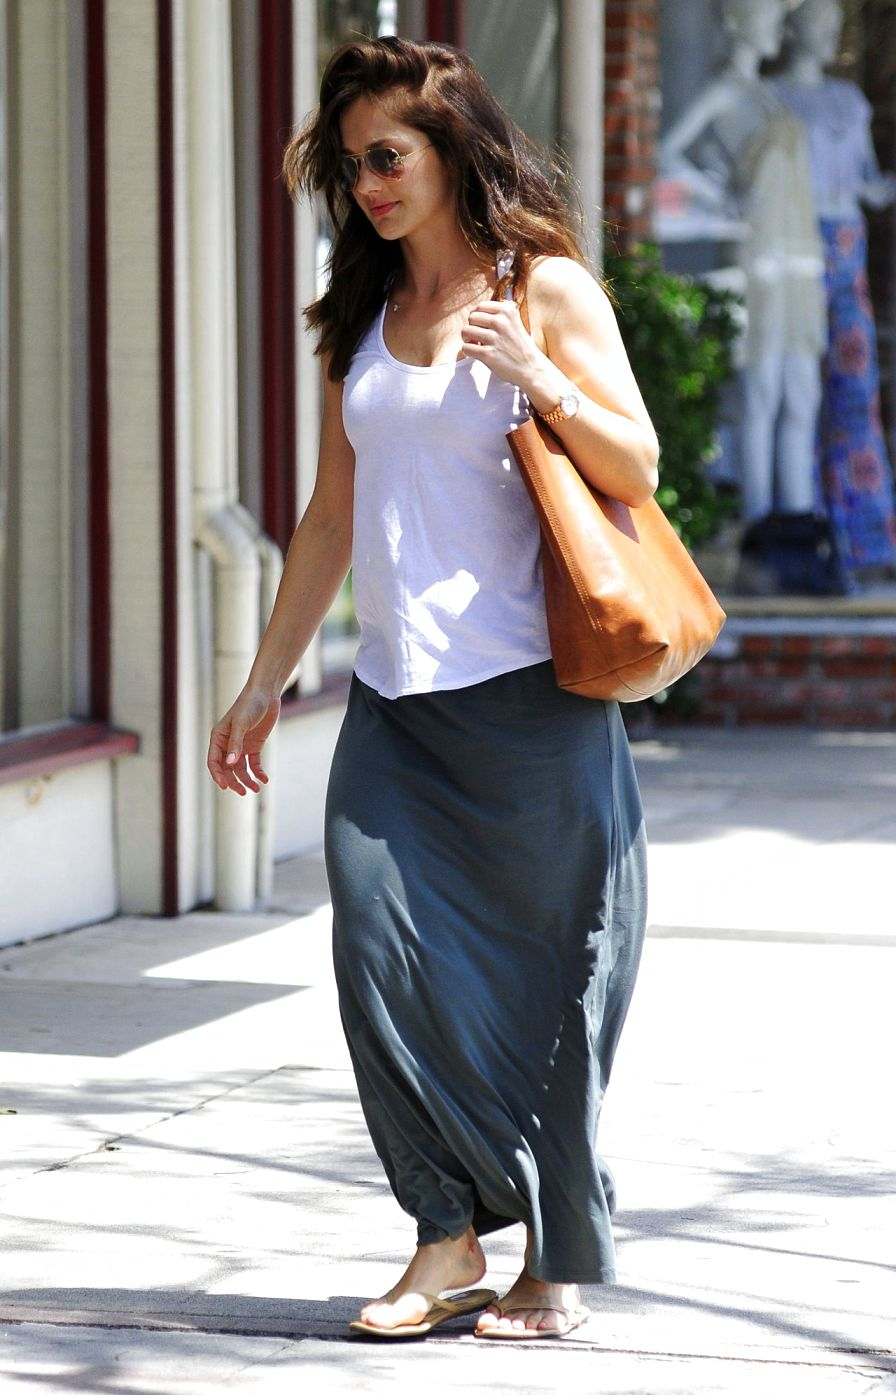 megan fox street style fashion my real style